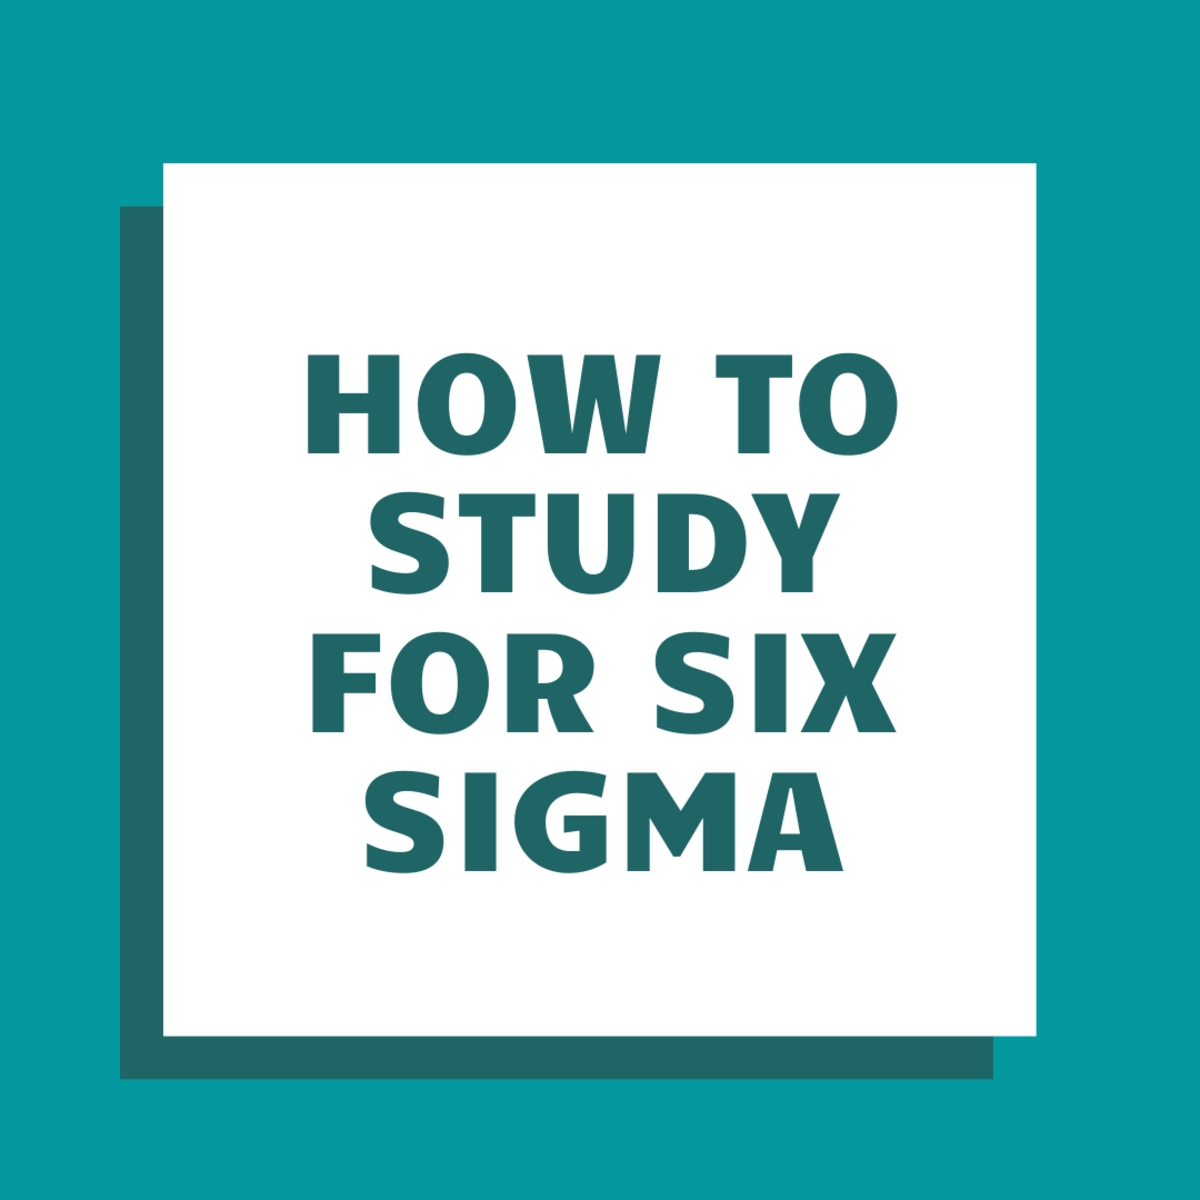 How to Study for Six Sigma